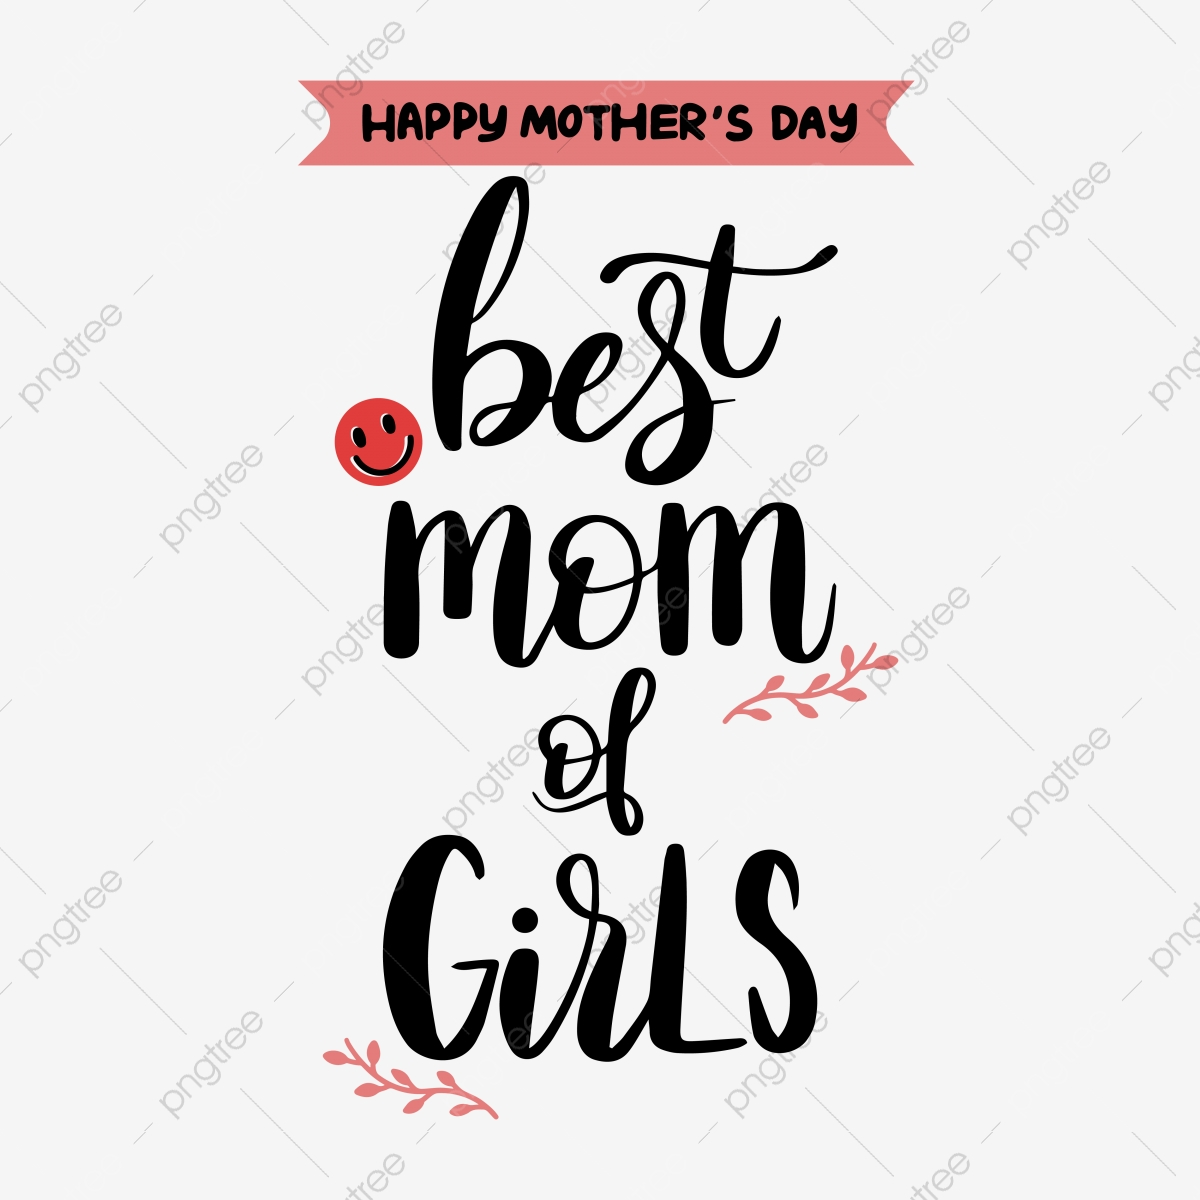 Free Mothers day simple hand drawn svg flower art word. Pink Cute Hand Painted Mothers Day Svg Flower Art Word Font Effect Eps For Free Download SVG, PNG, EPS, DXF File